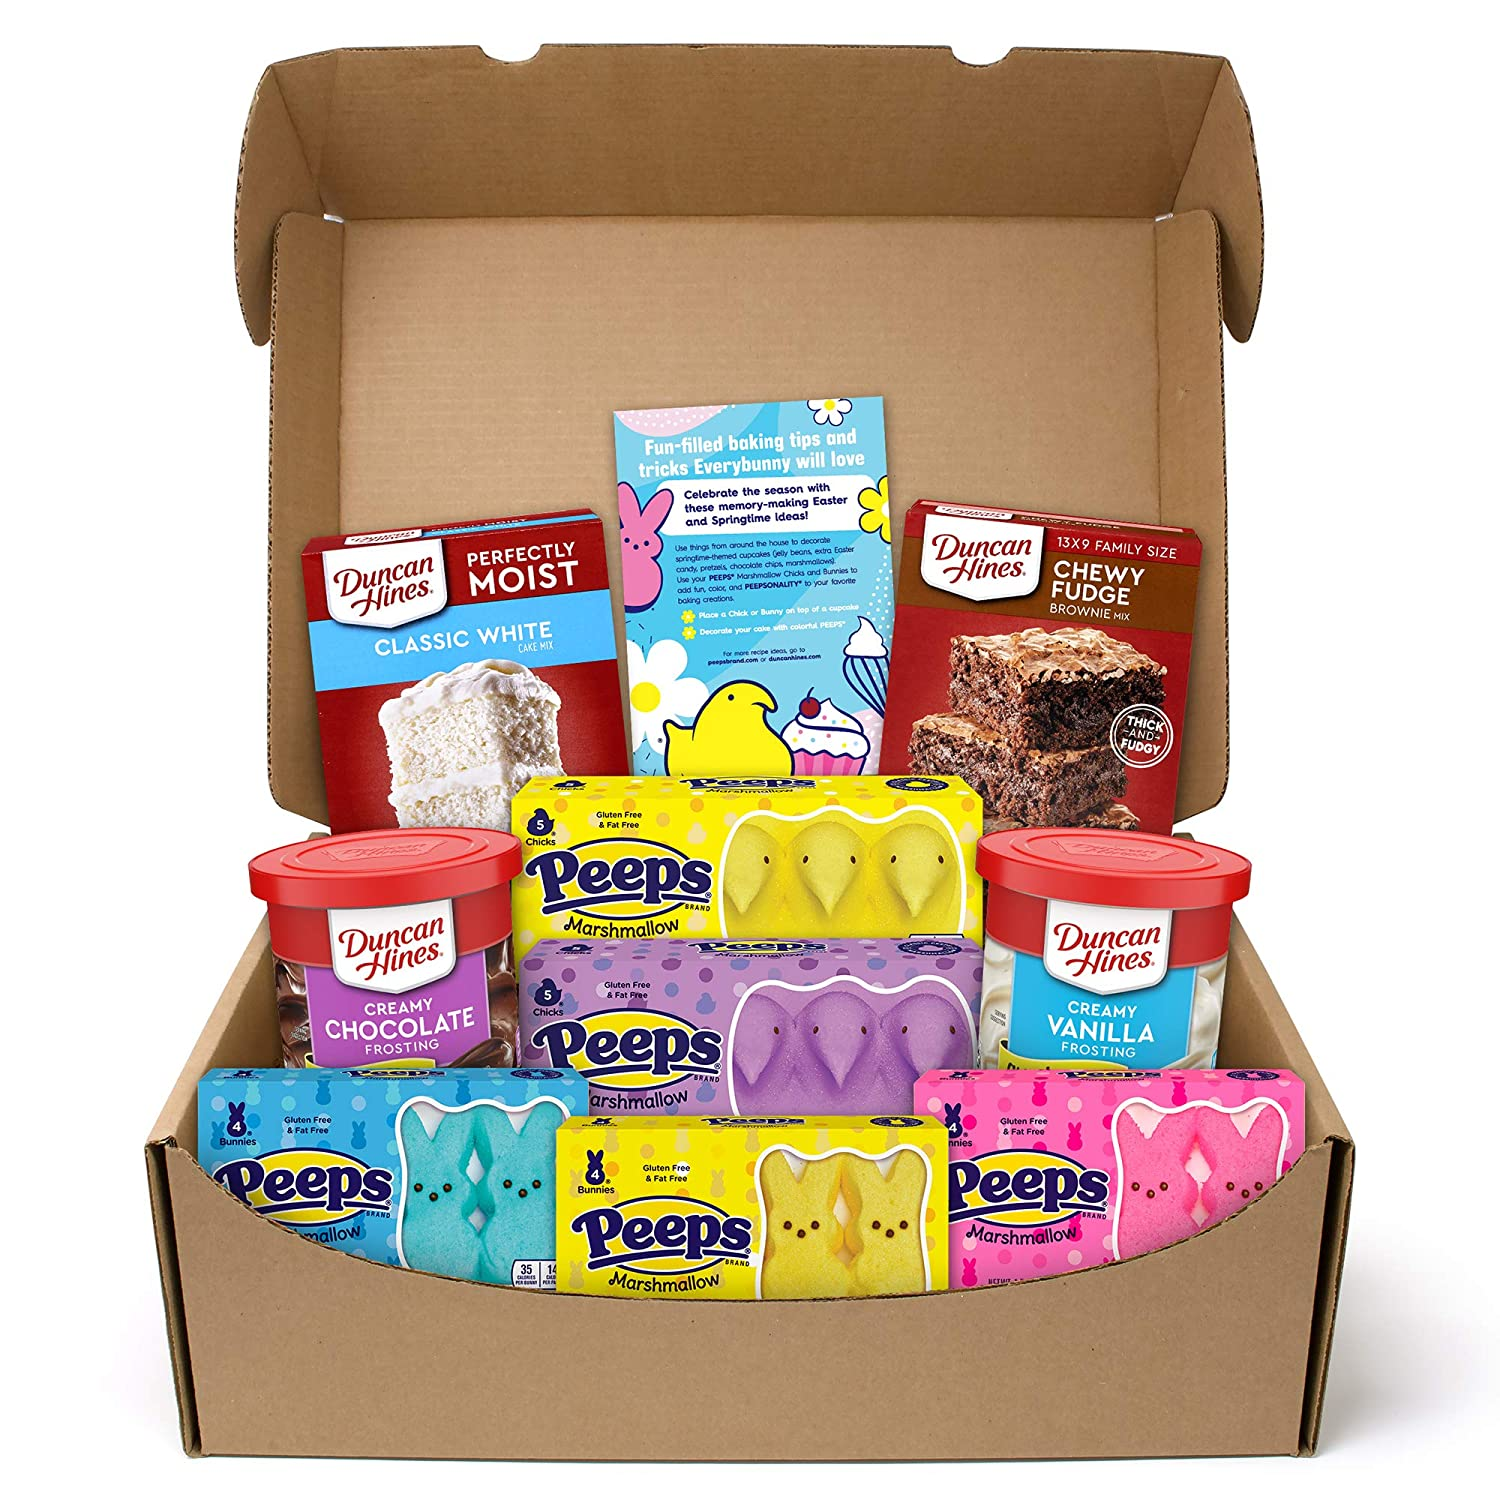 Duncan Hines and PEEPS Spring Baking Kit With Cake Mix, Brownie Mix, Frostings, PEEPS Brand Marshmallow Chicks and Bunnies